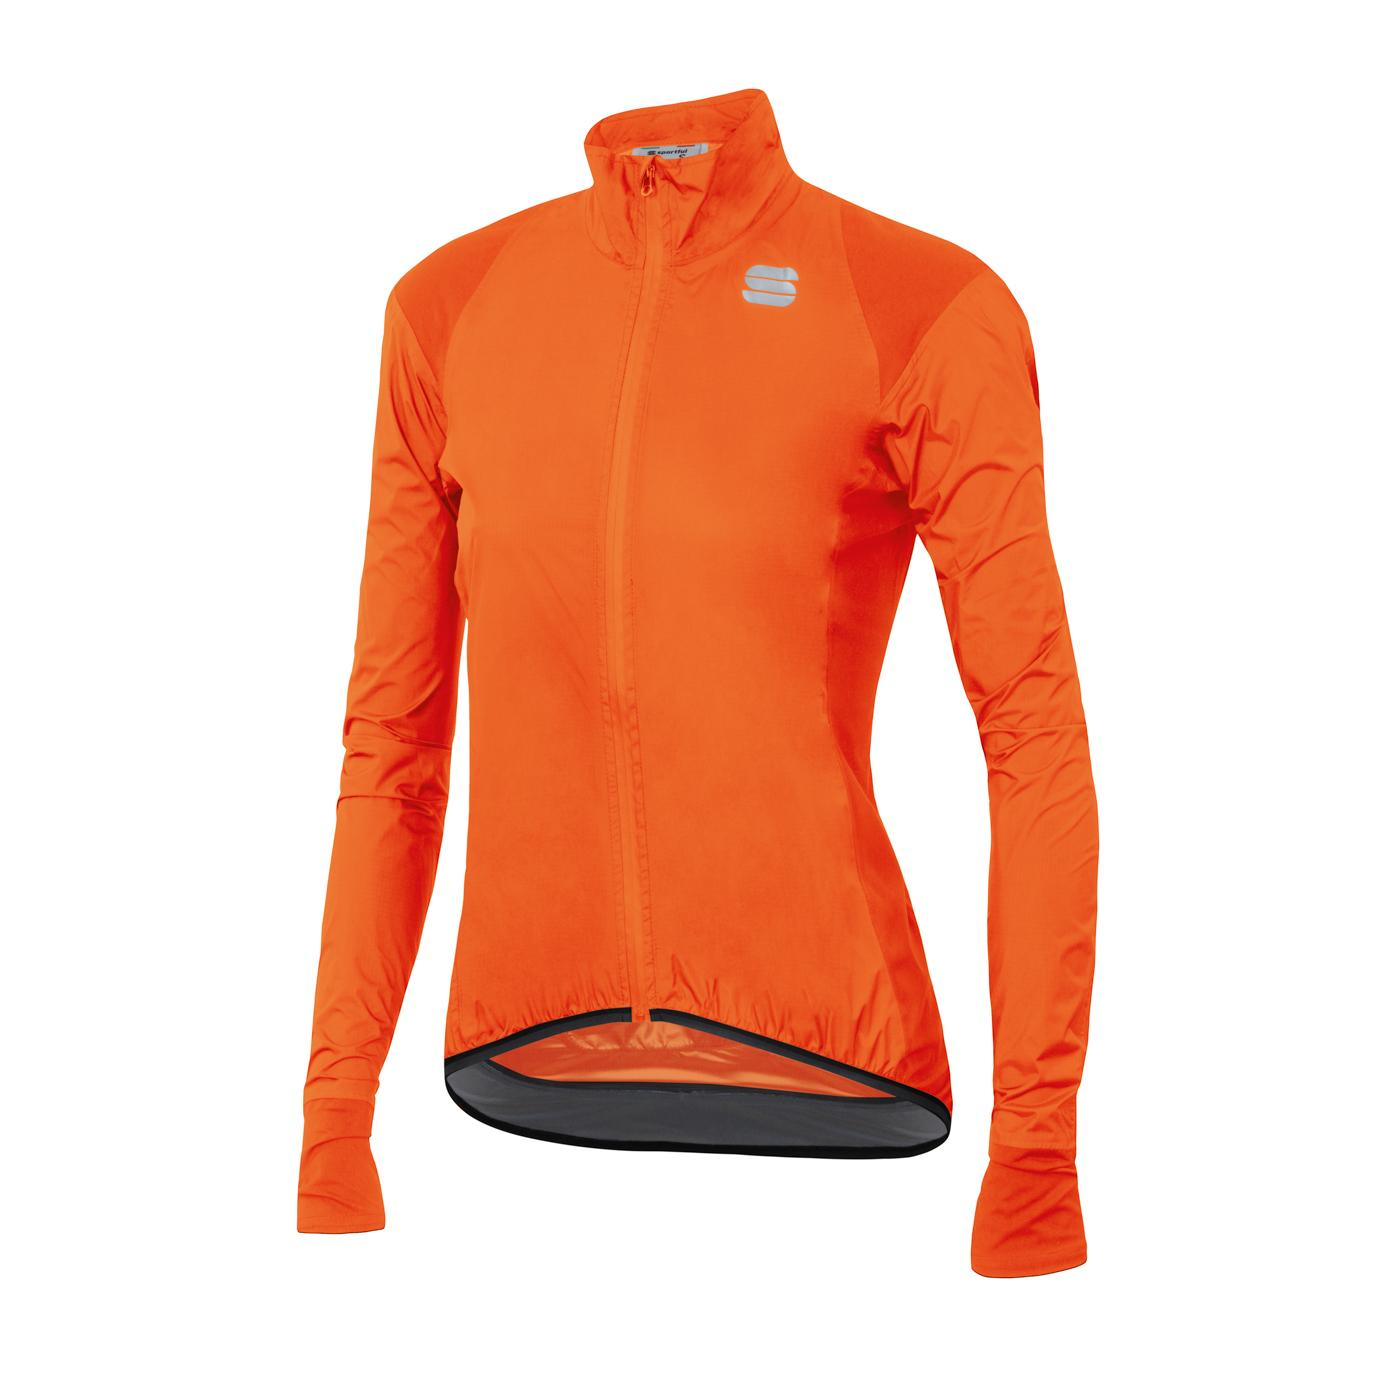 Sportful Fietsjack Lange mouwen Zeer sterk waterafstotend voor Dames Oranje - SF Hot Pack No Rain W Jacket-Orange Sdr